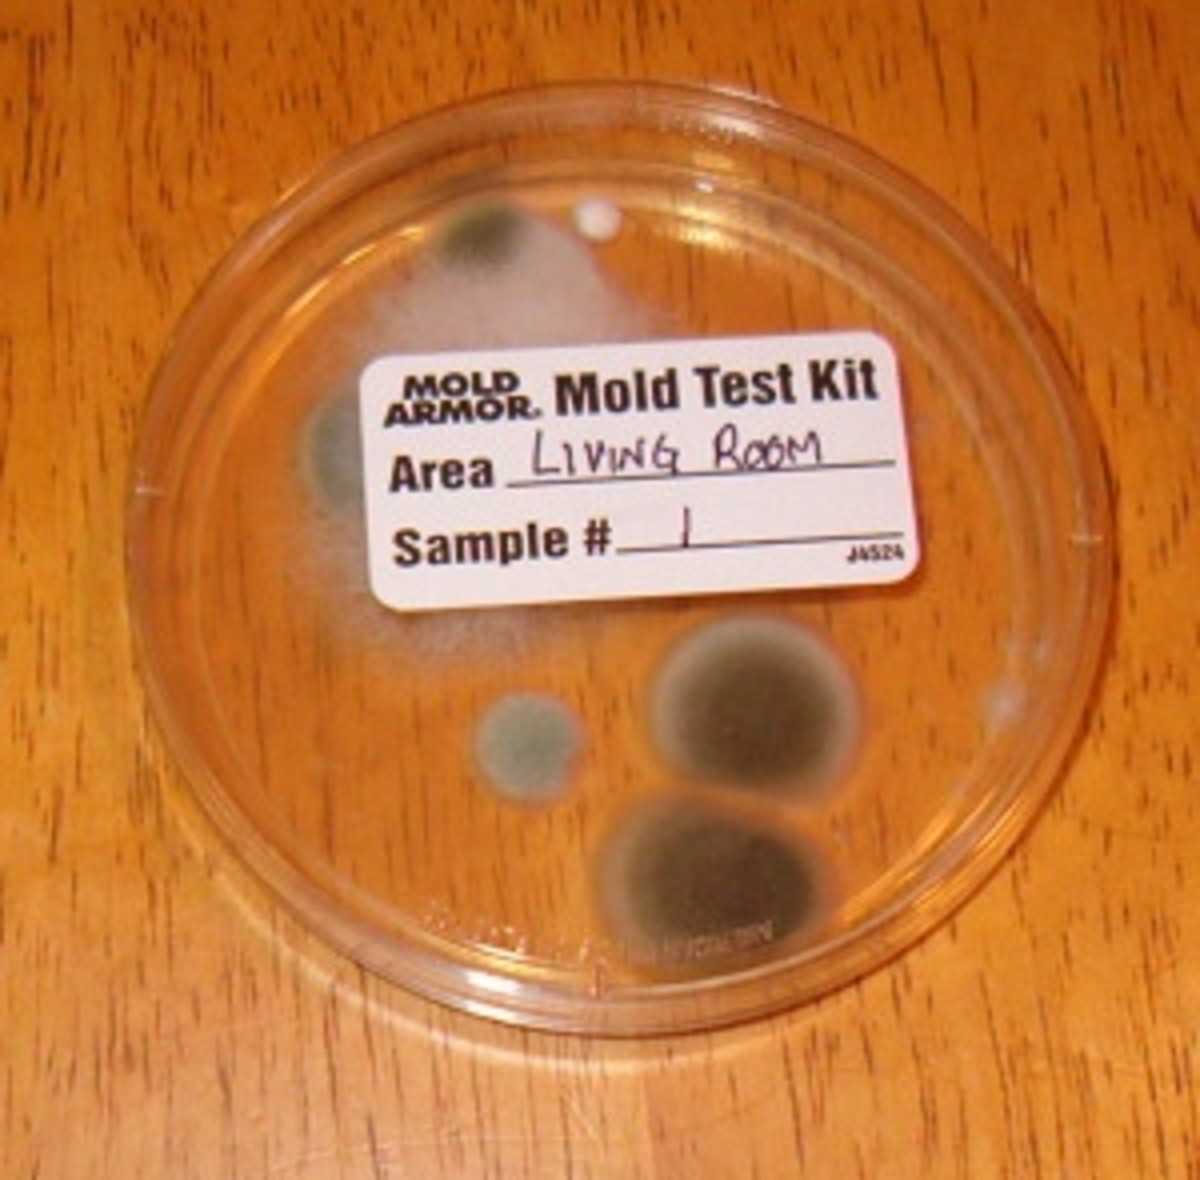 A mold test kit from Home Depot